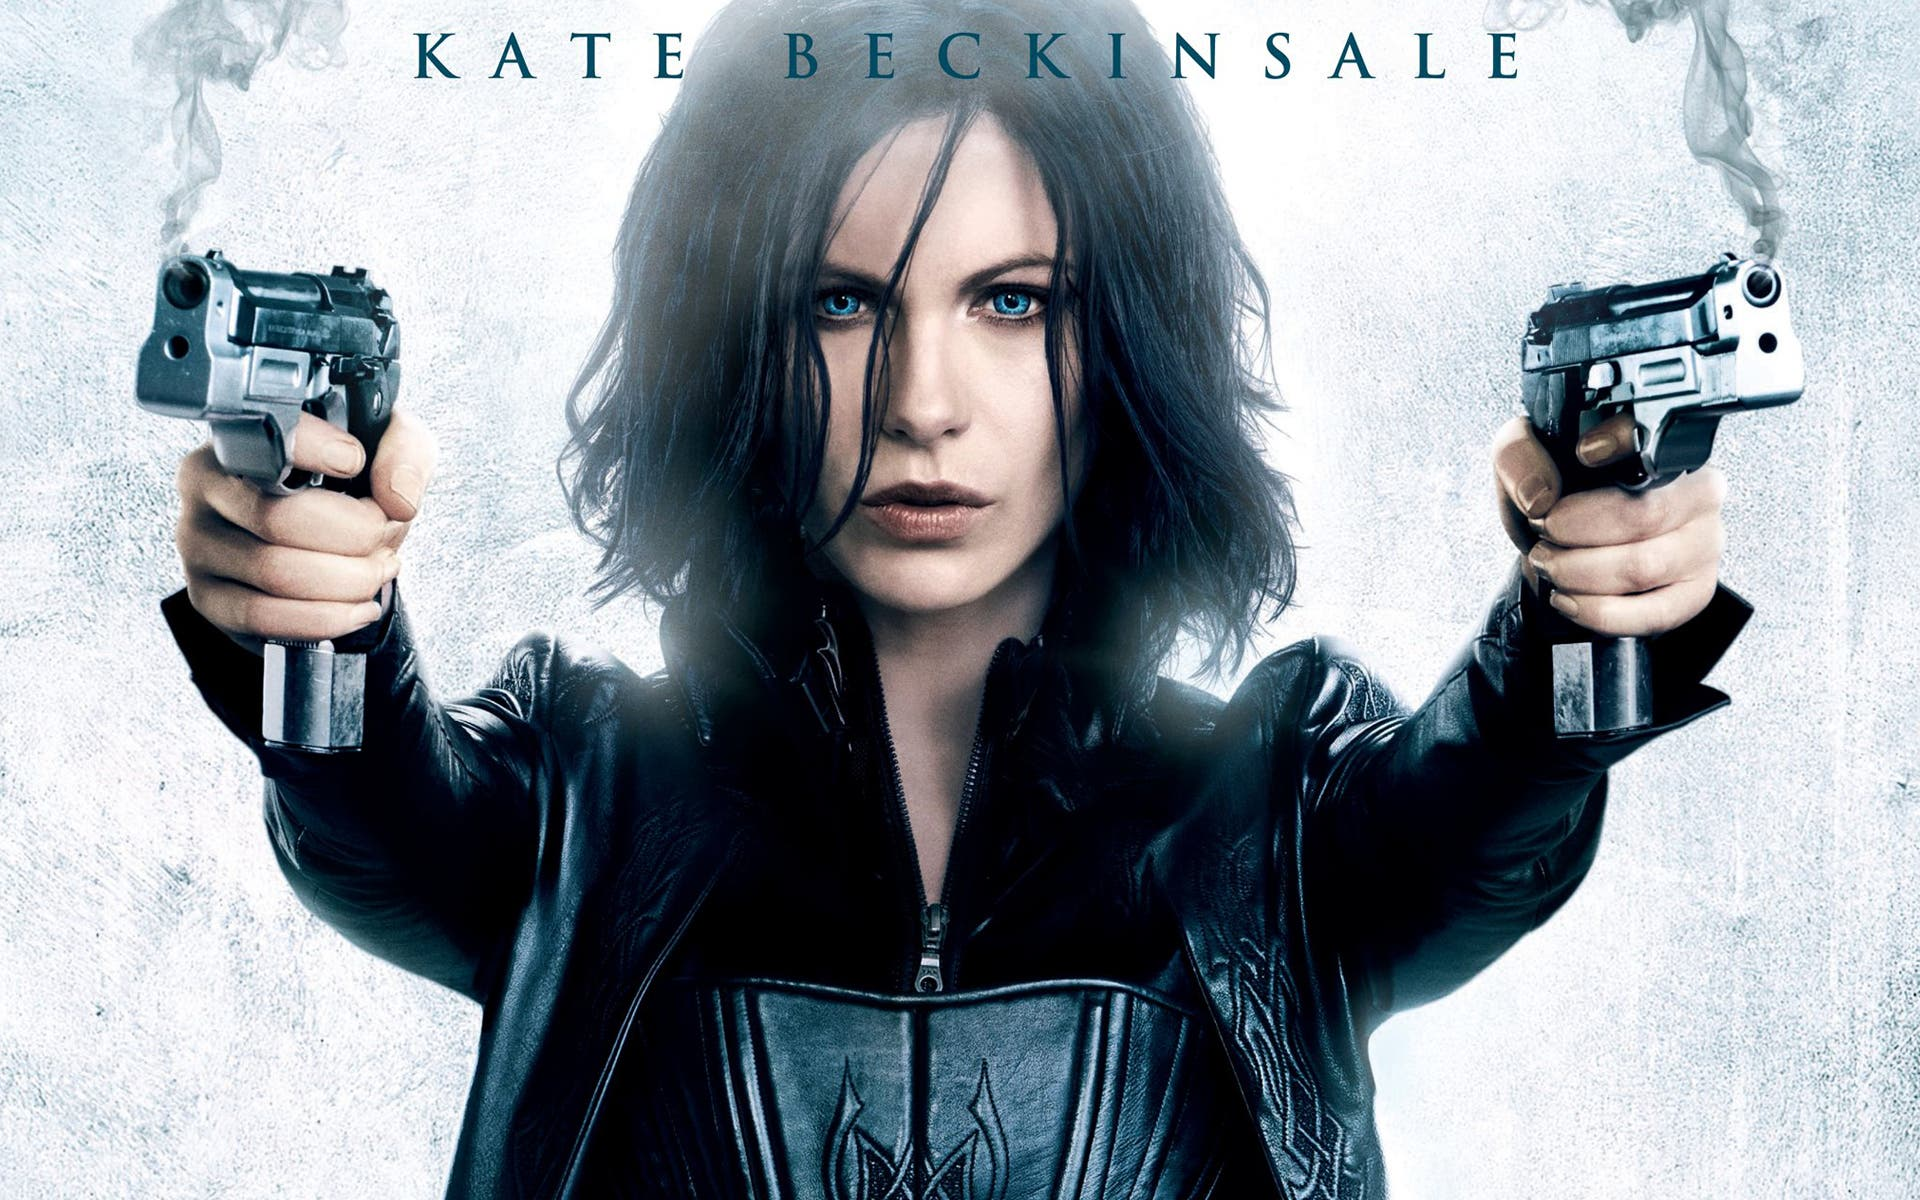 Kate Beckinsale in Underworld 4 LO+HOT: Kate Beckinsale